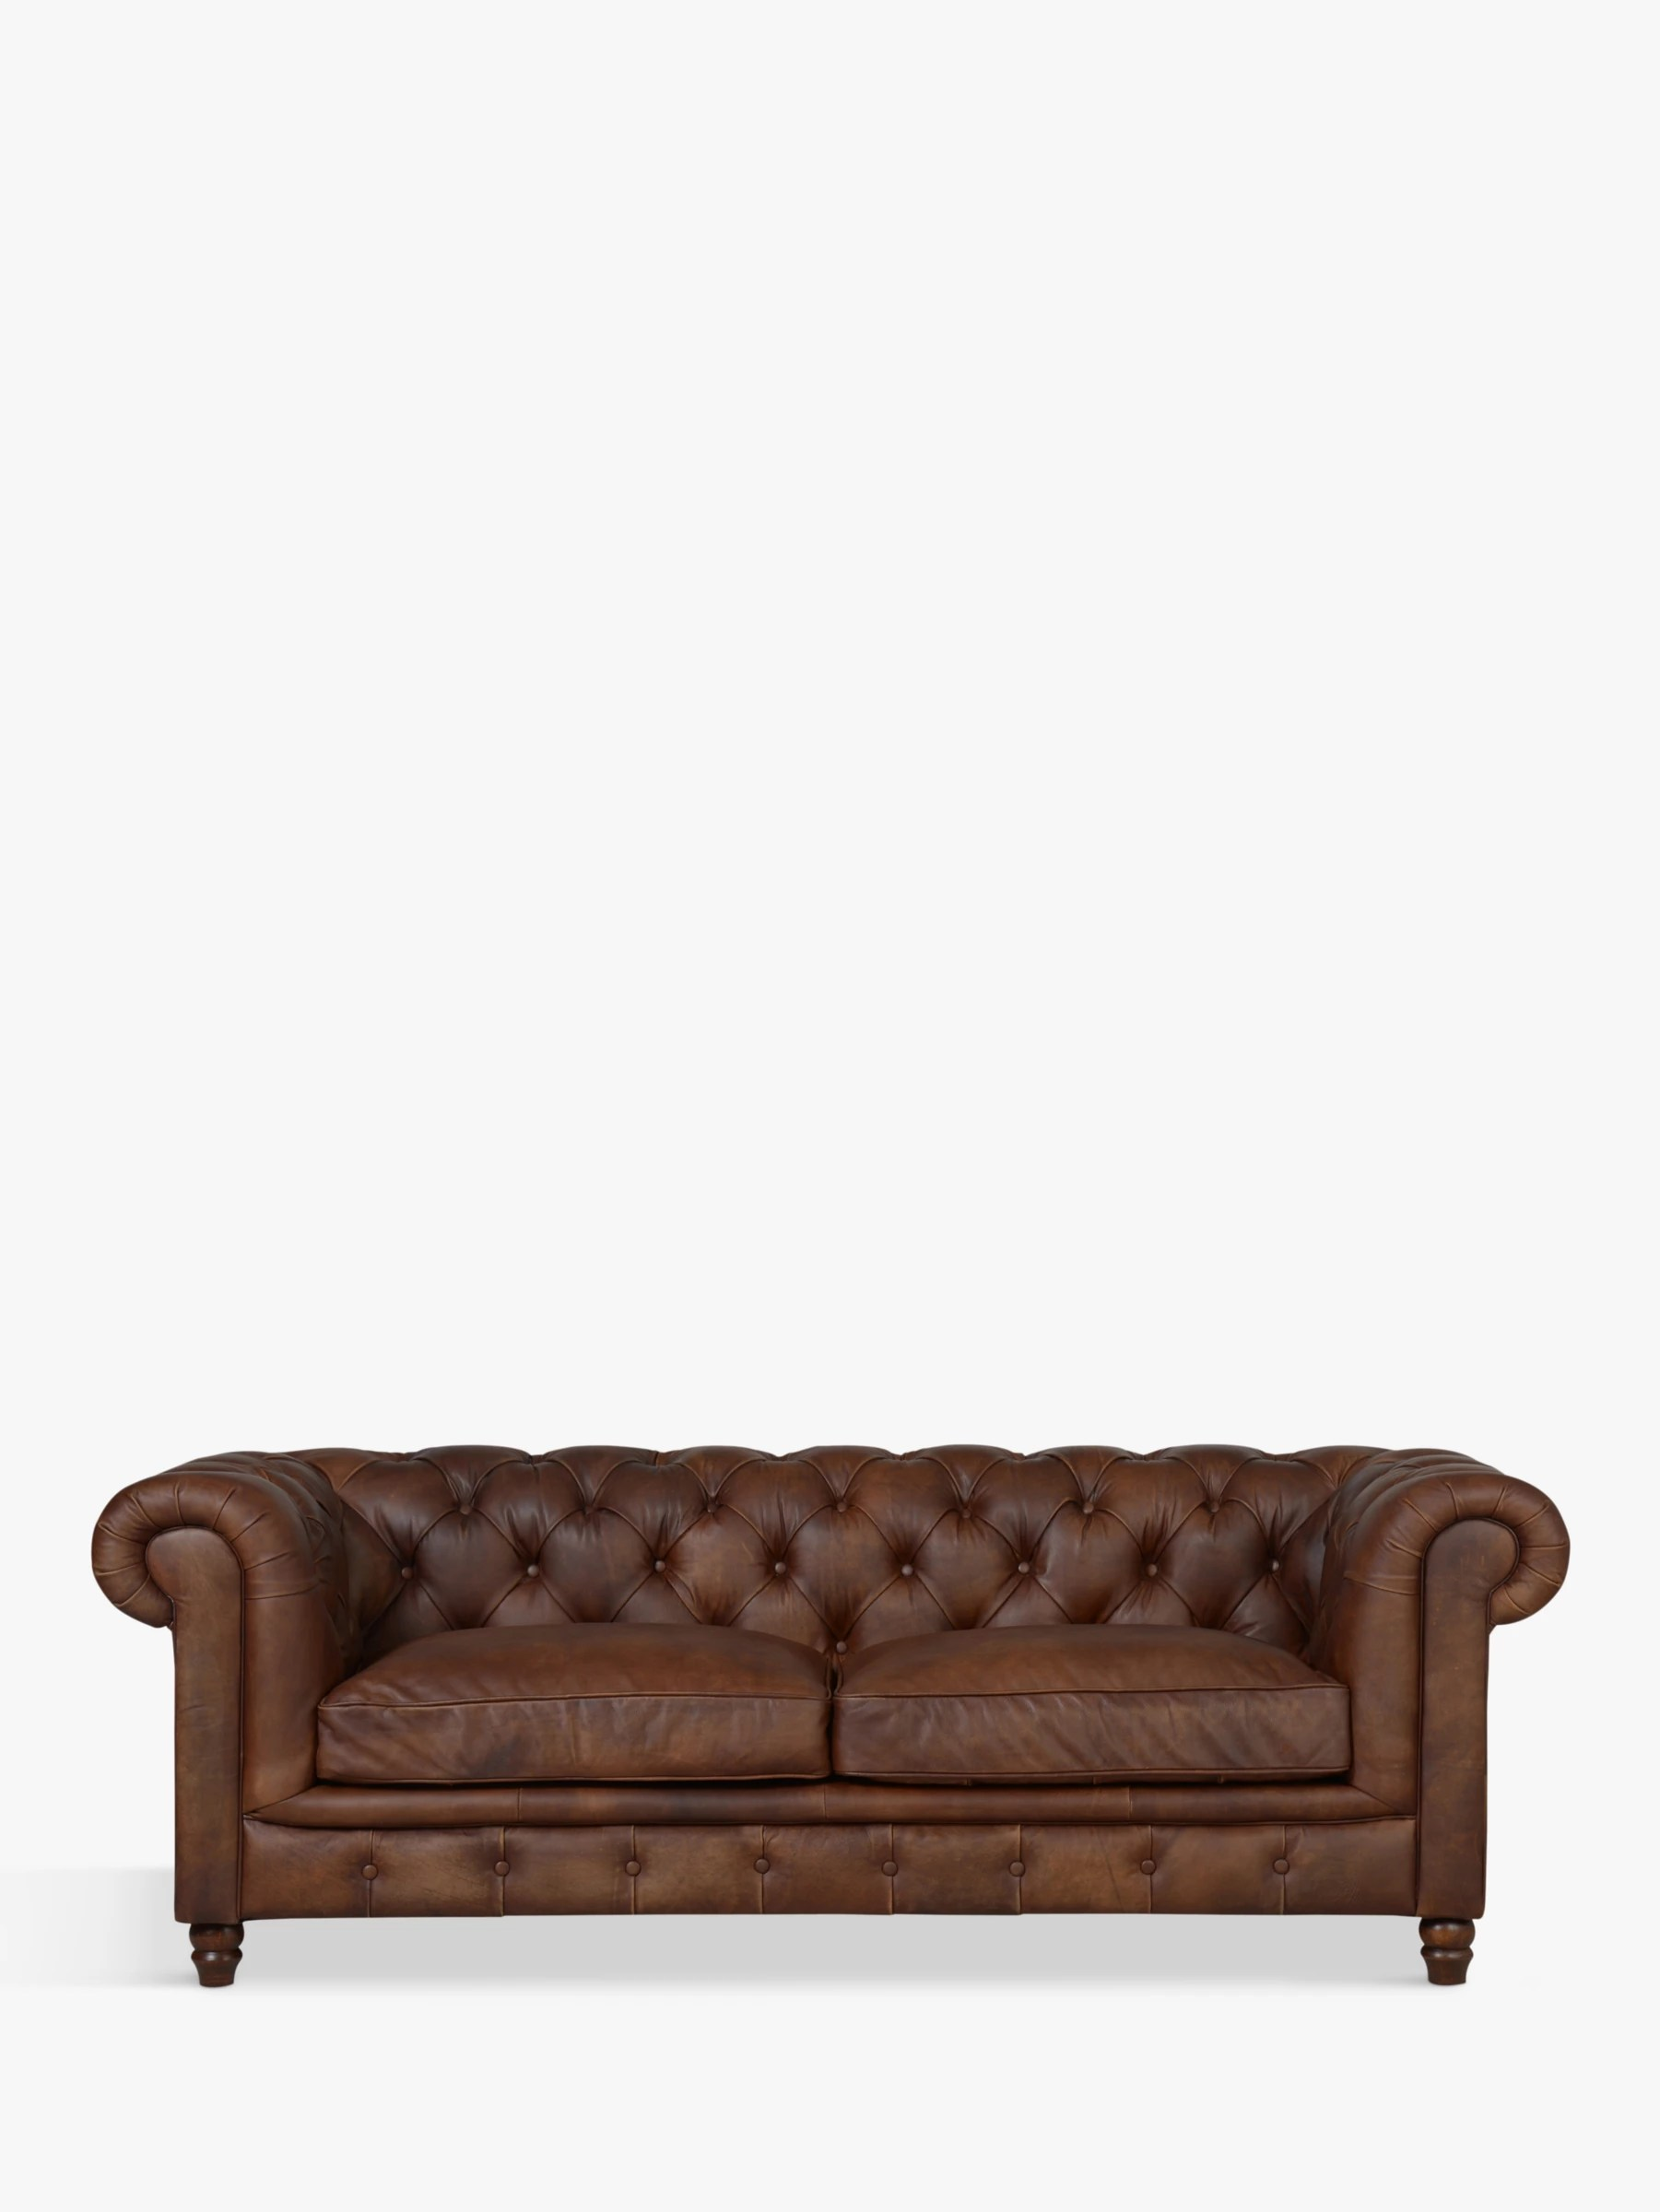 scotch and sofa creations onehunga halo earle aniline leather chesterfield large